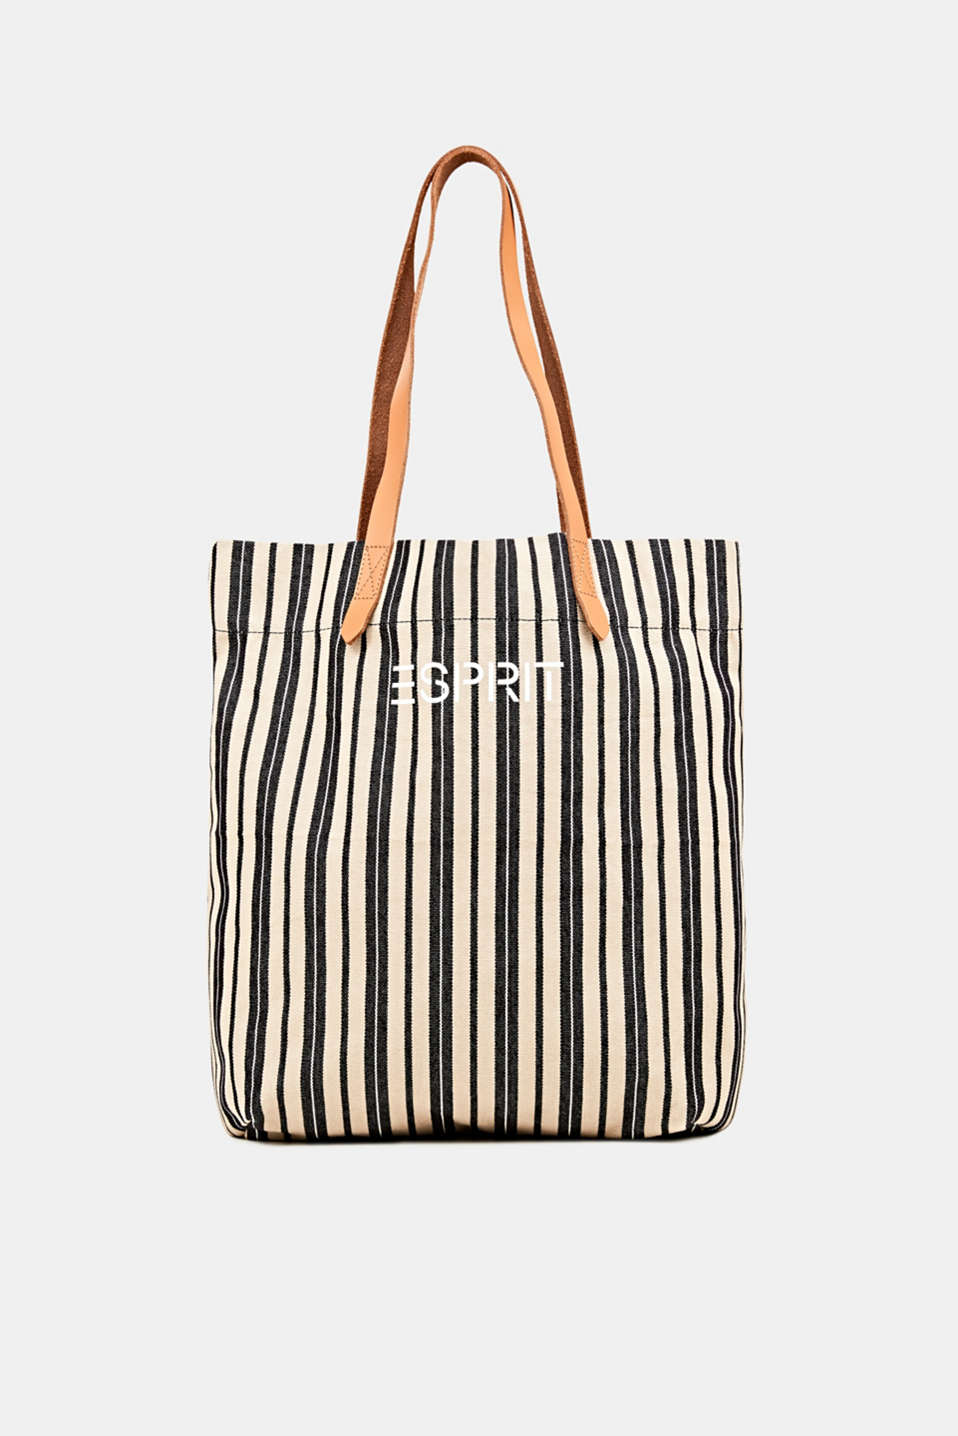 Esprit - Tote bag in canvas con manici in pelle